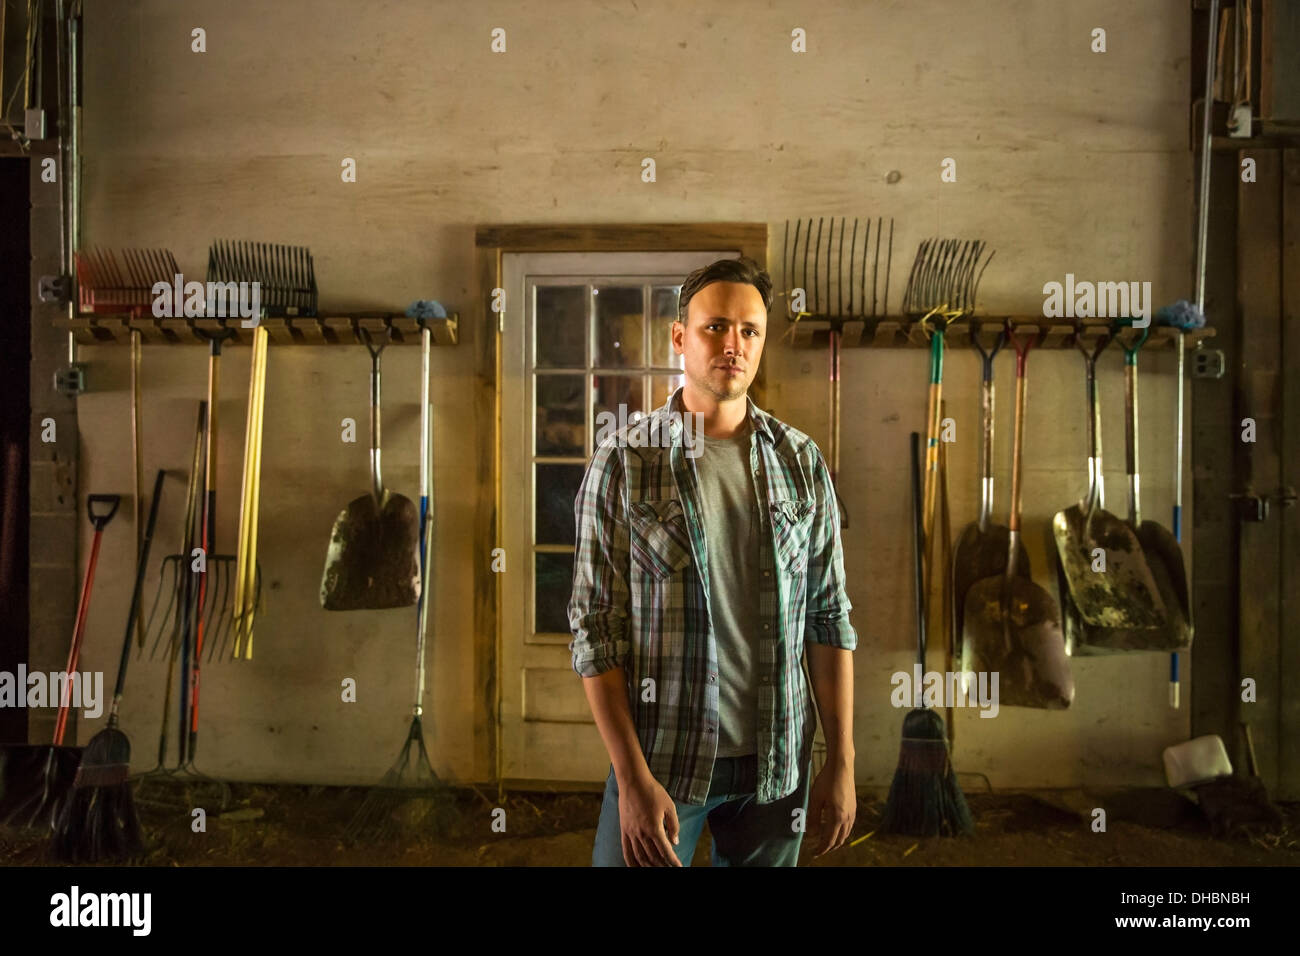 An organic farm in the Catskills. A man standing in a barn with equipment stored around the walls. - Stock Image